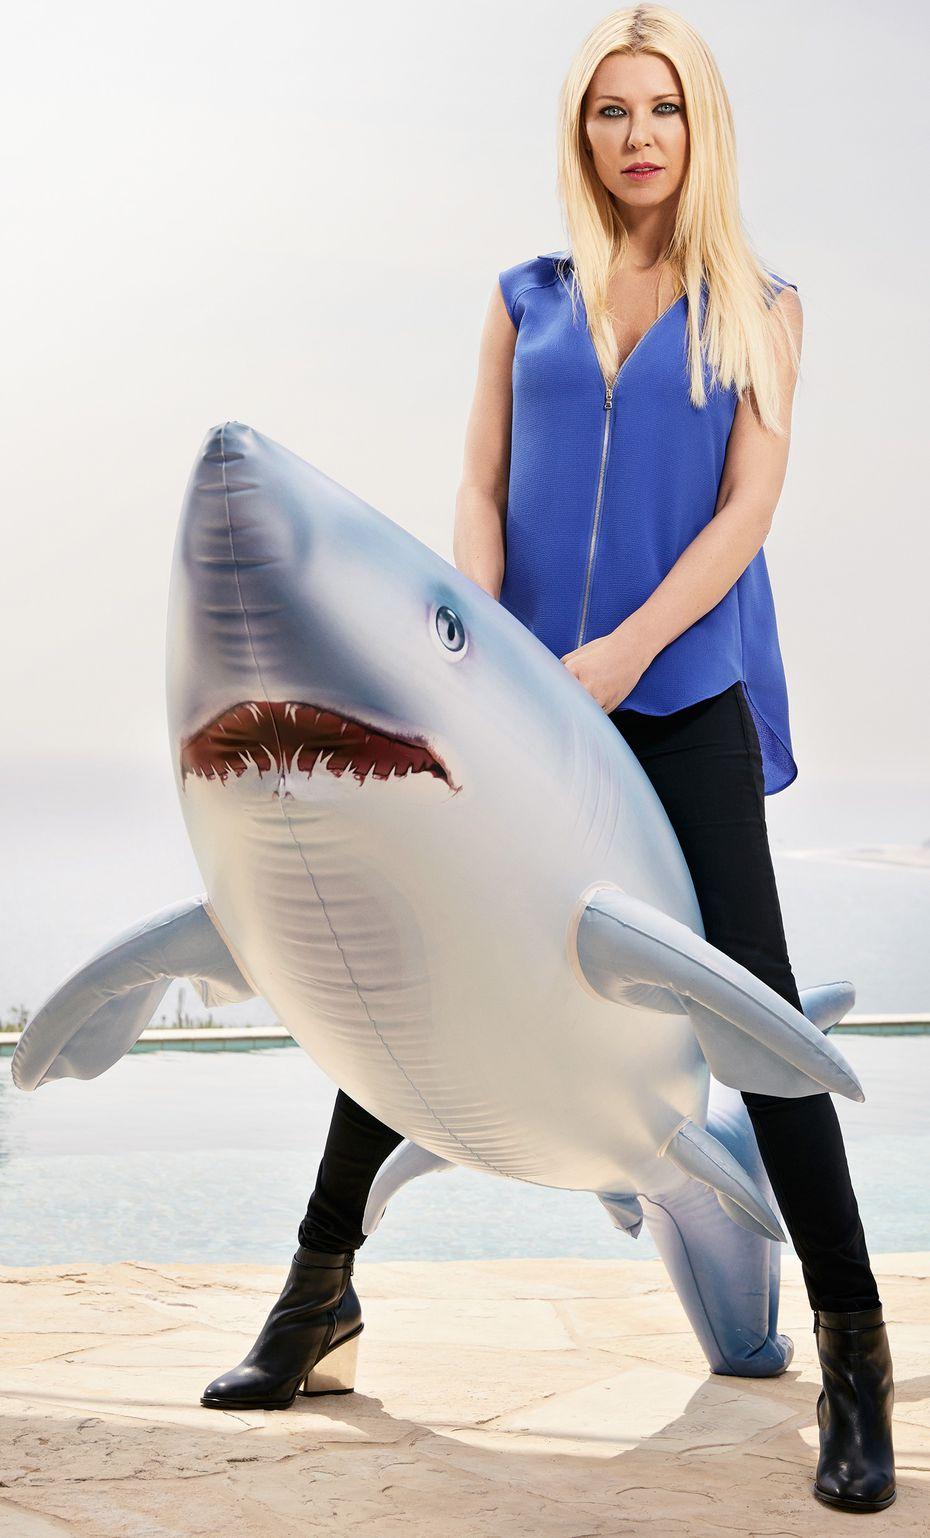 Tara Reid as April Wexler is the First Lady of America's Sharknado fighters.